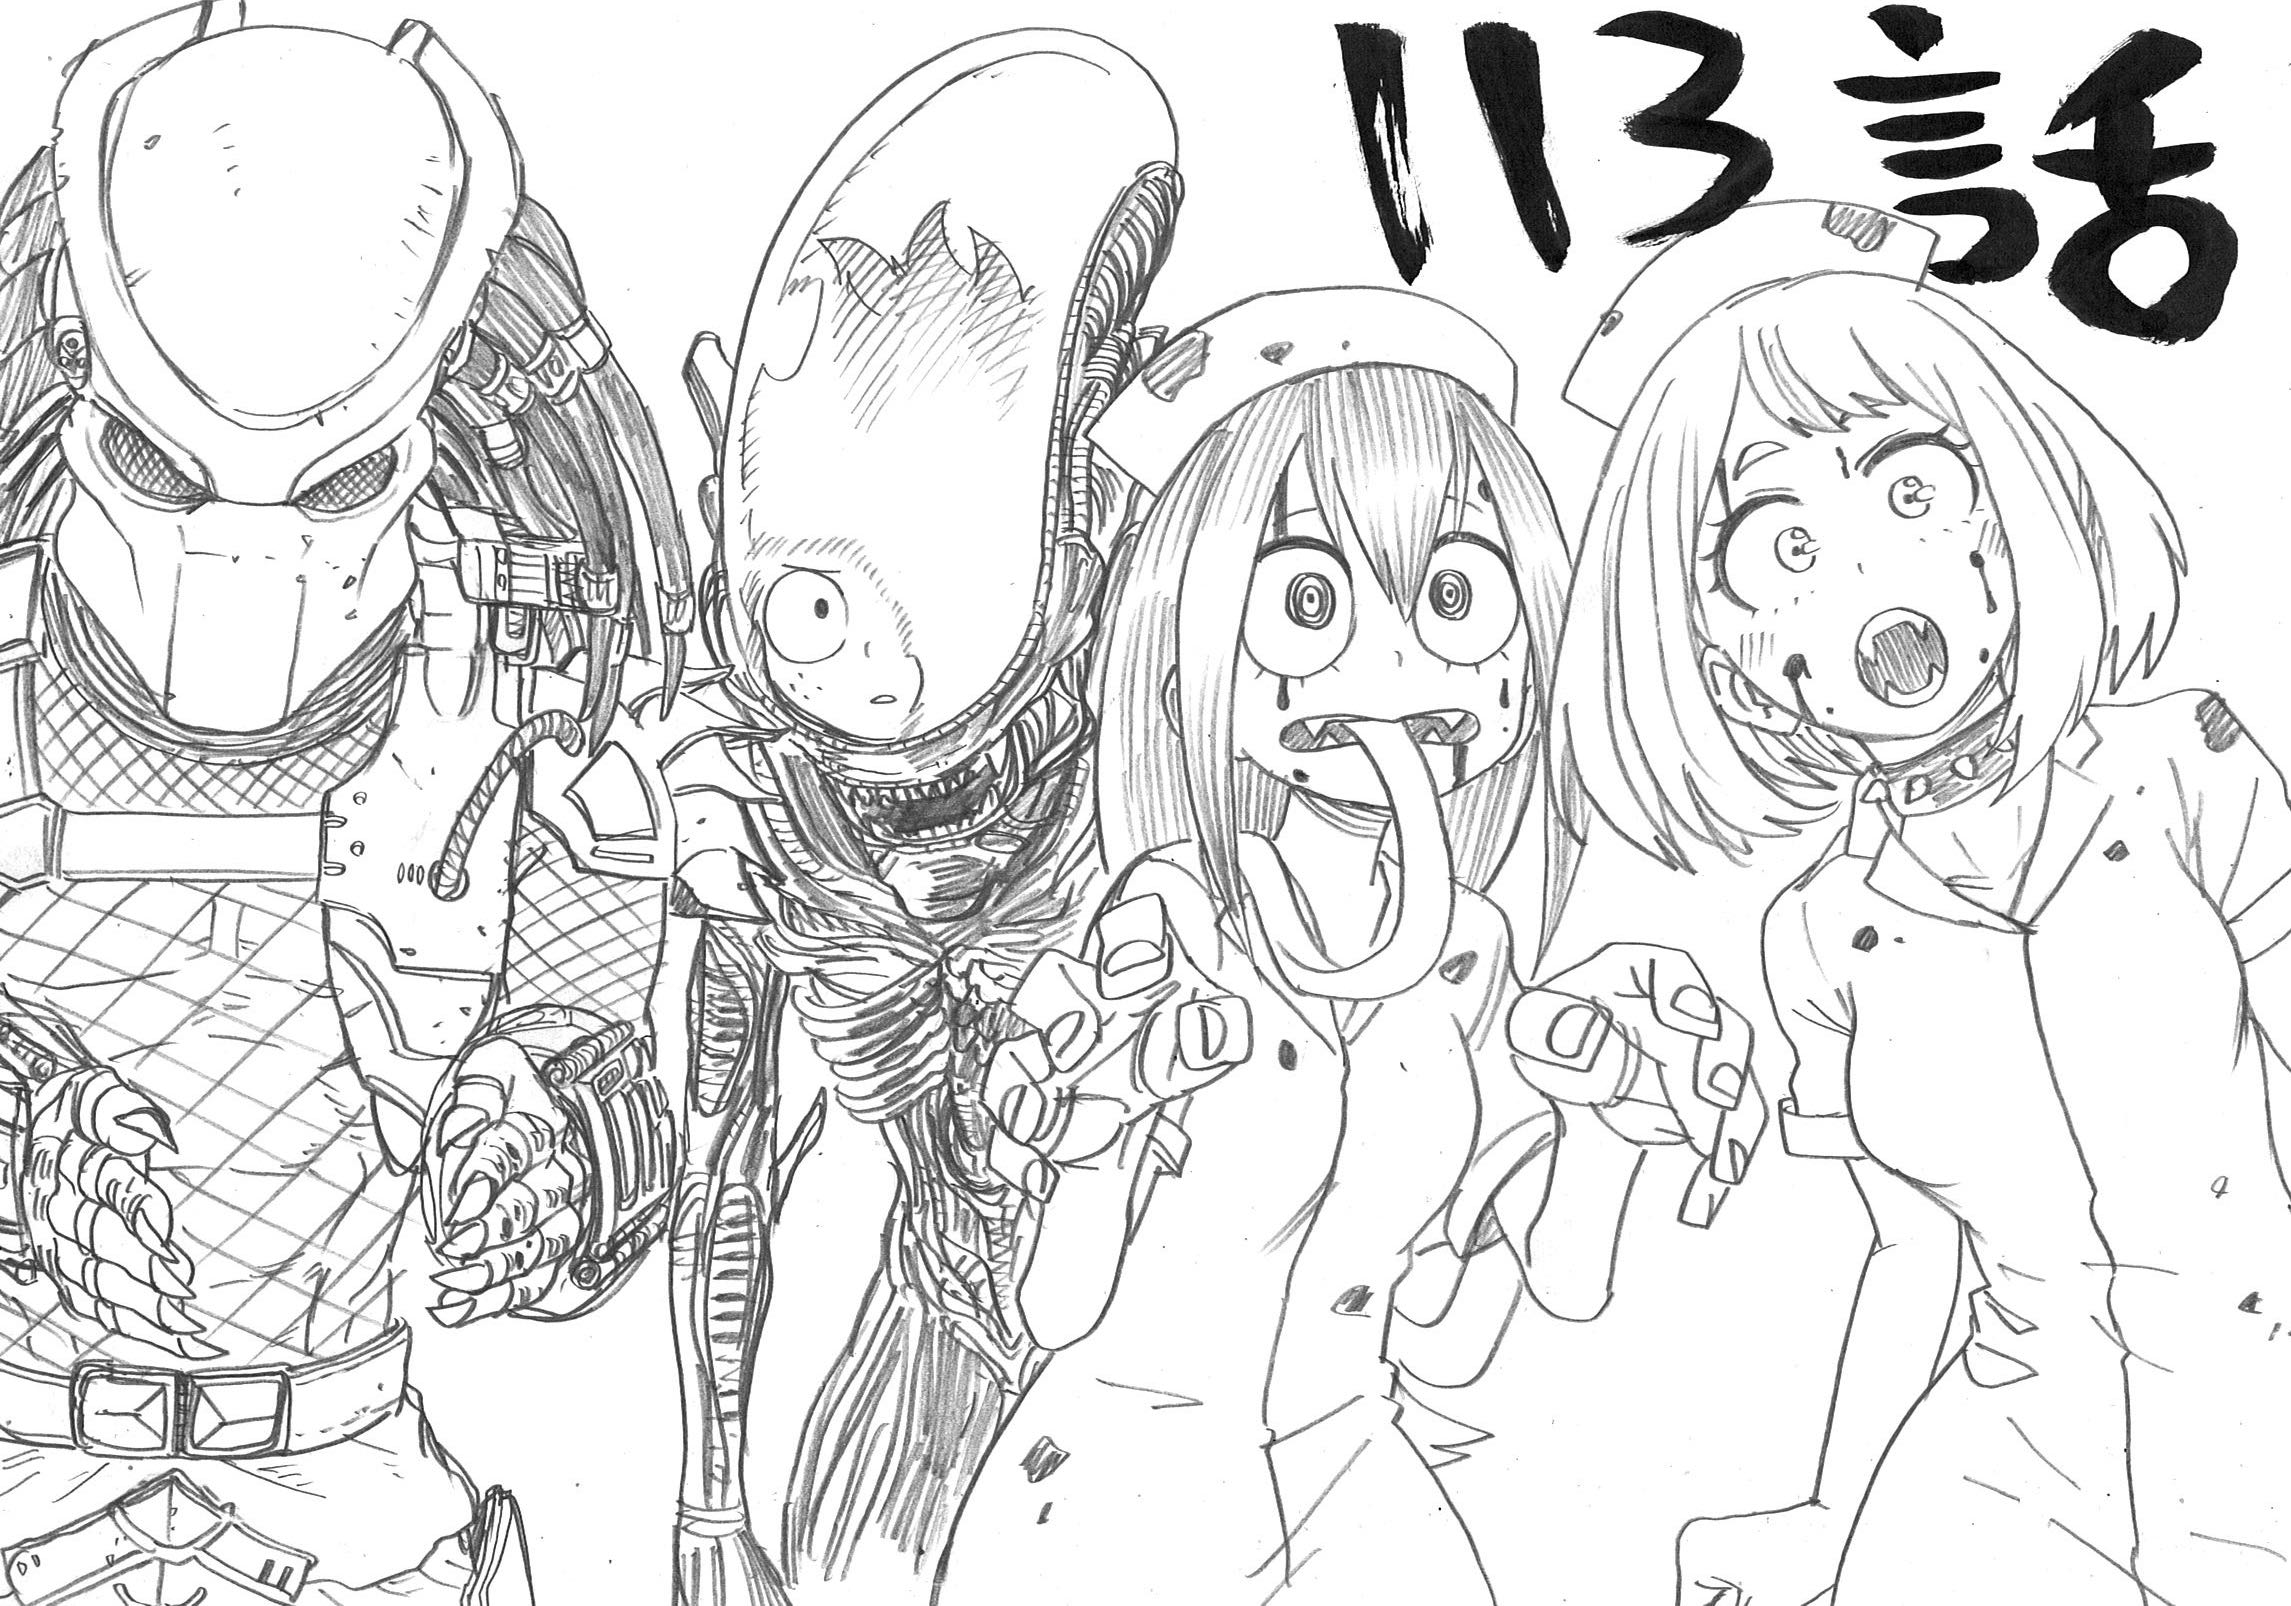 Chapter 113 Sketch